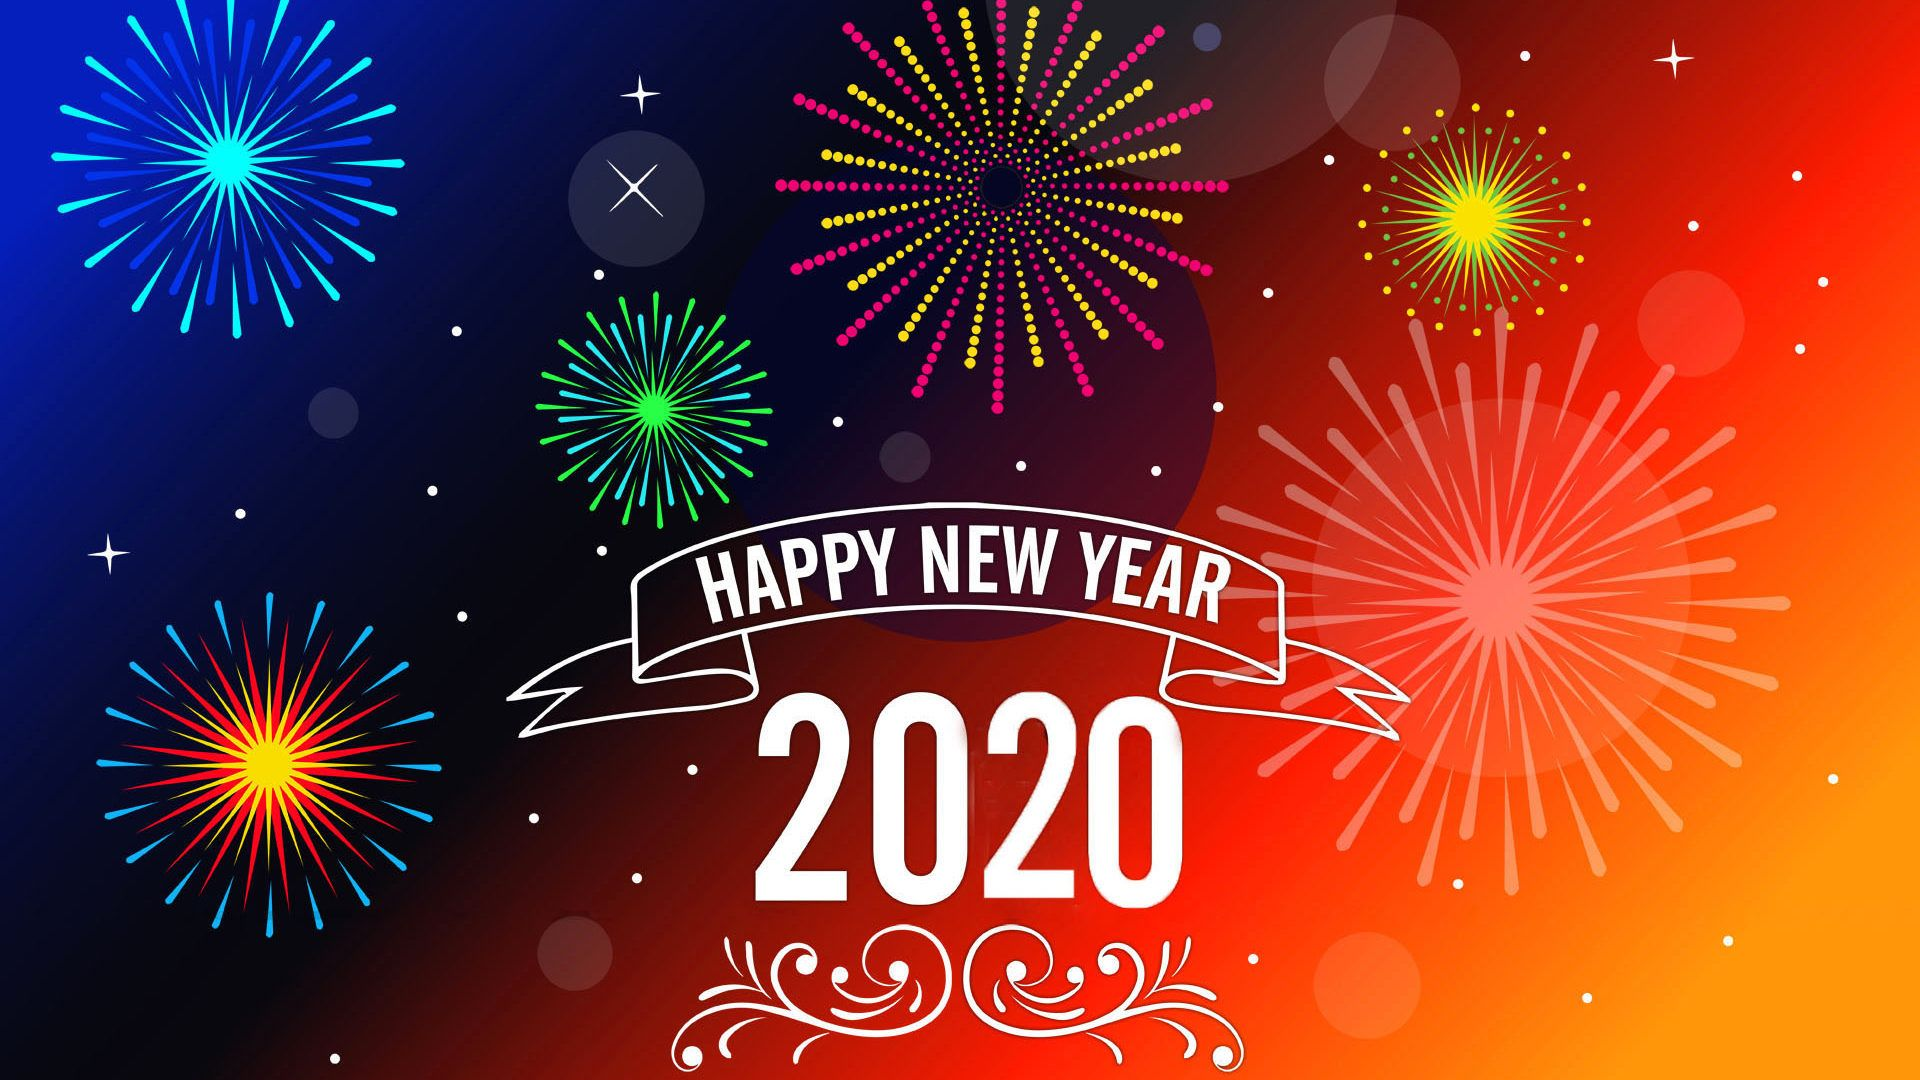 Happy New Year 2020 Wallpapers 30 images   WallpaperBoat 1920x1080